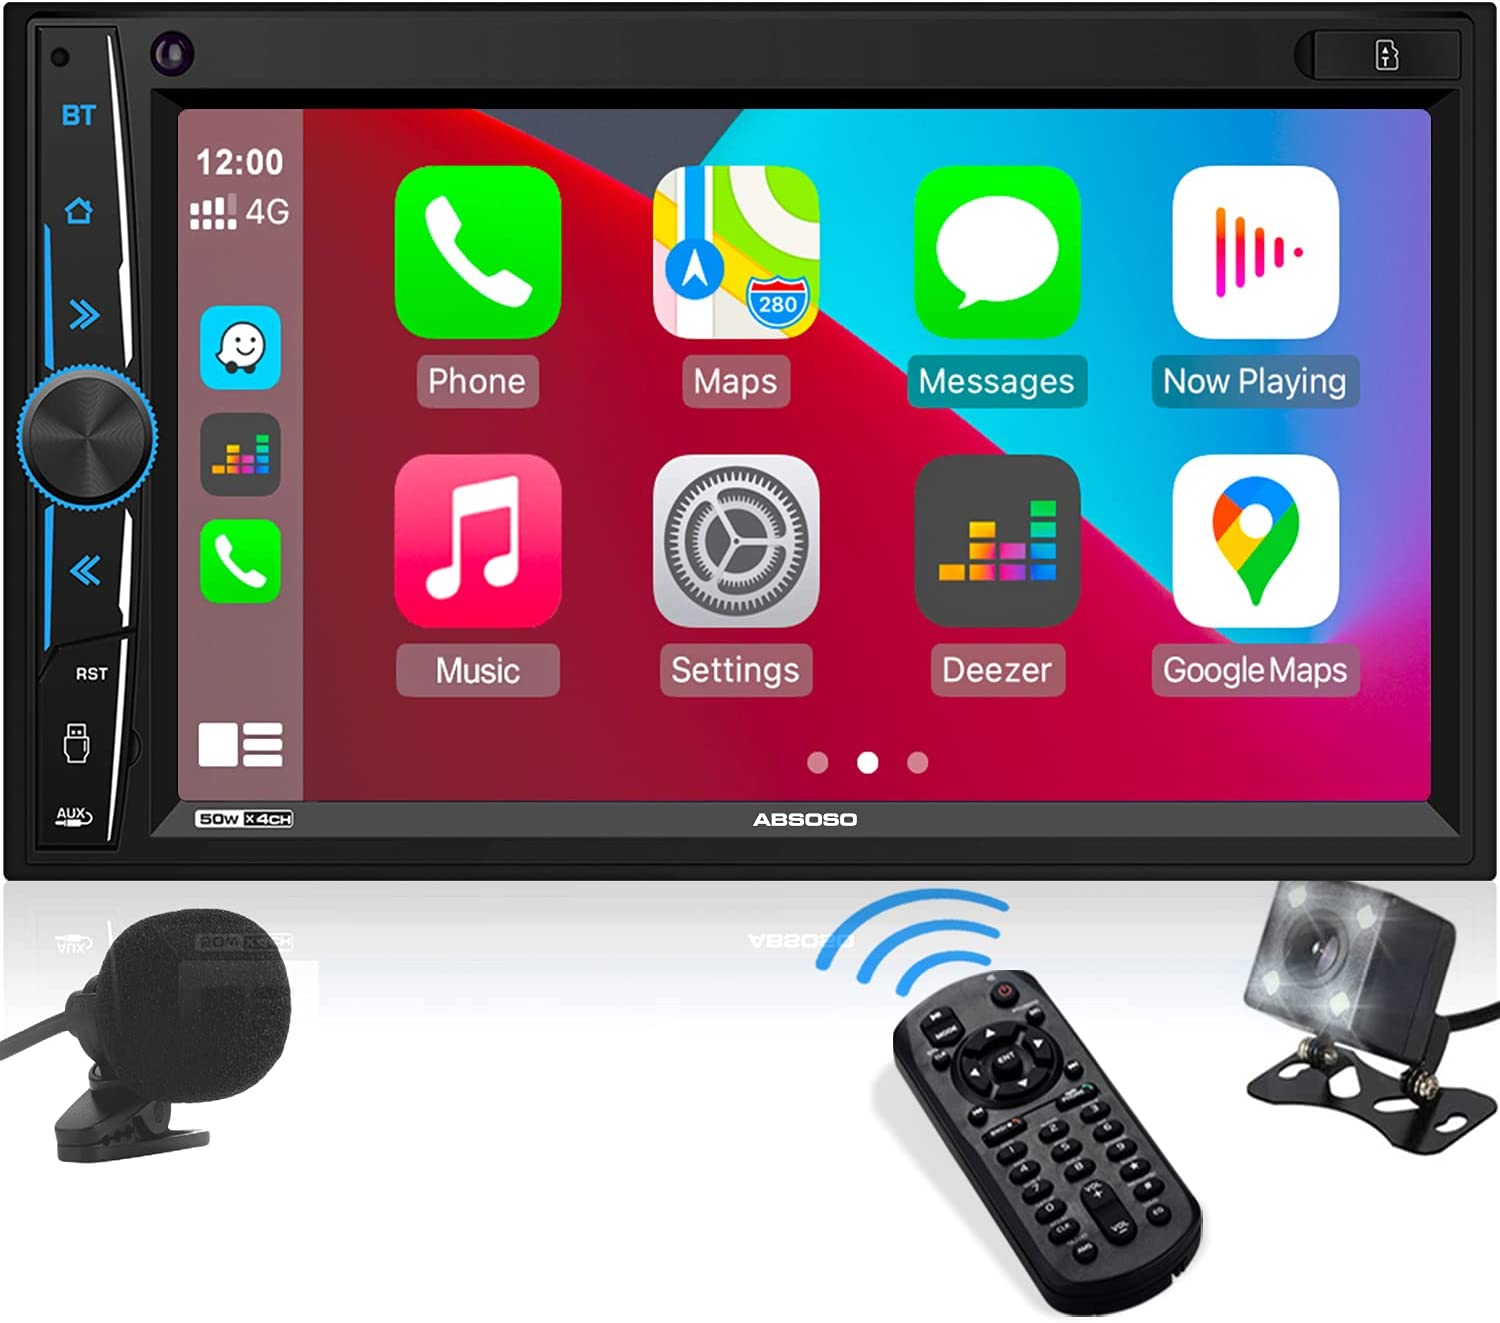 Double Din Stereo Apple Carplay: ABSOSO in-Dash Car Multimedia Player with Bluetooth, Phone Link, HD Touchscreen Monitor, Mic, Rearview Cam, A/V Input, FM/AM Car Radio, Steering Wheel